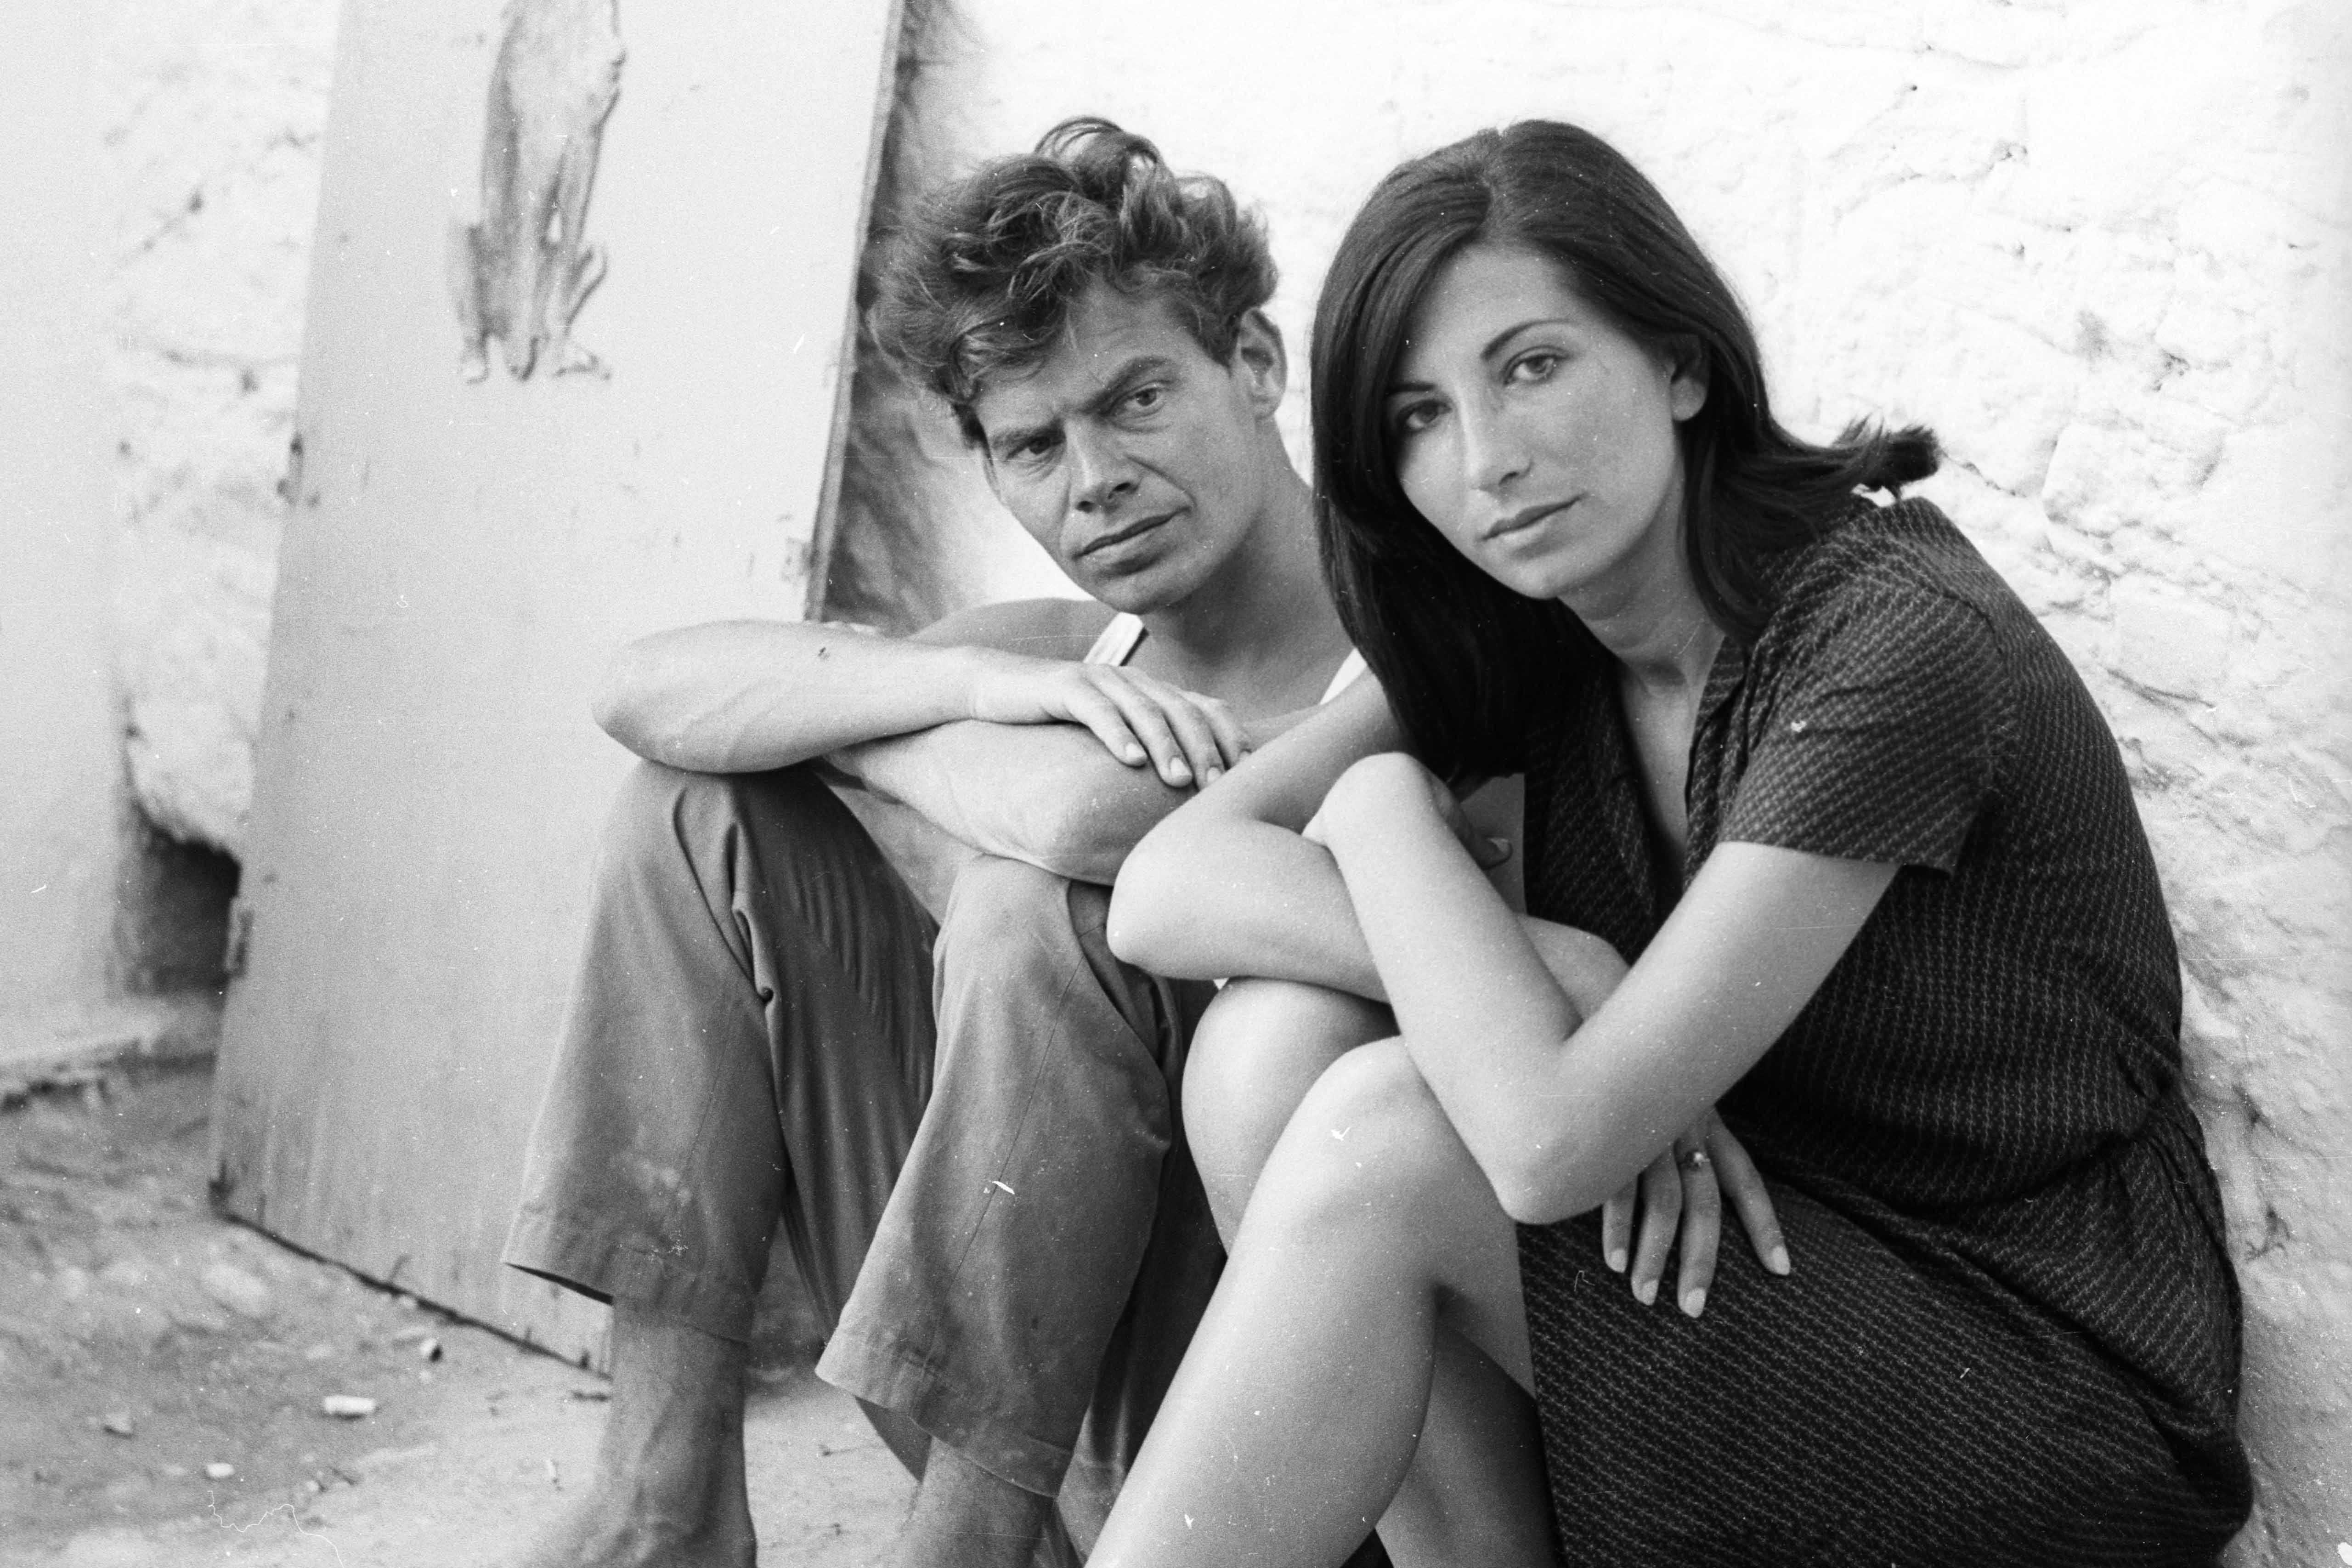 Character portrait of Peter Brogle and Athina Zacharpoulou in the film Lebenszeichen